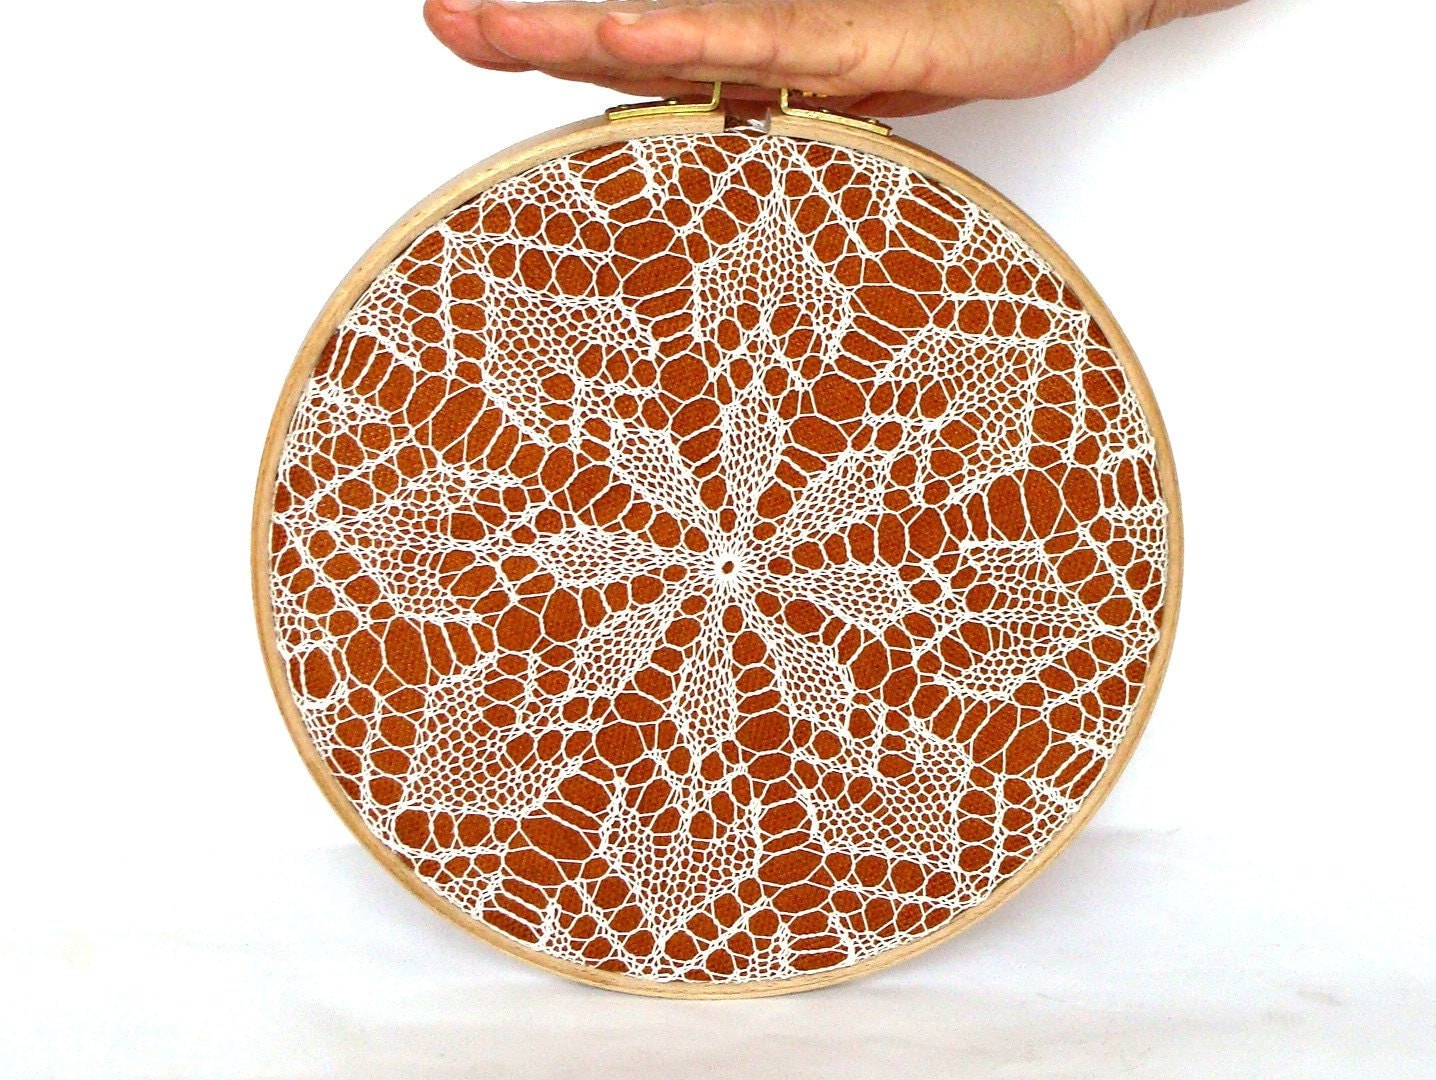 Embroidery hoop art knitted lace wall hanging house